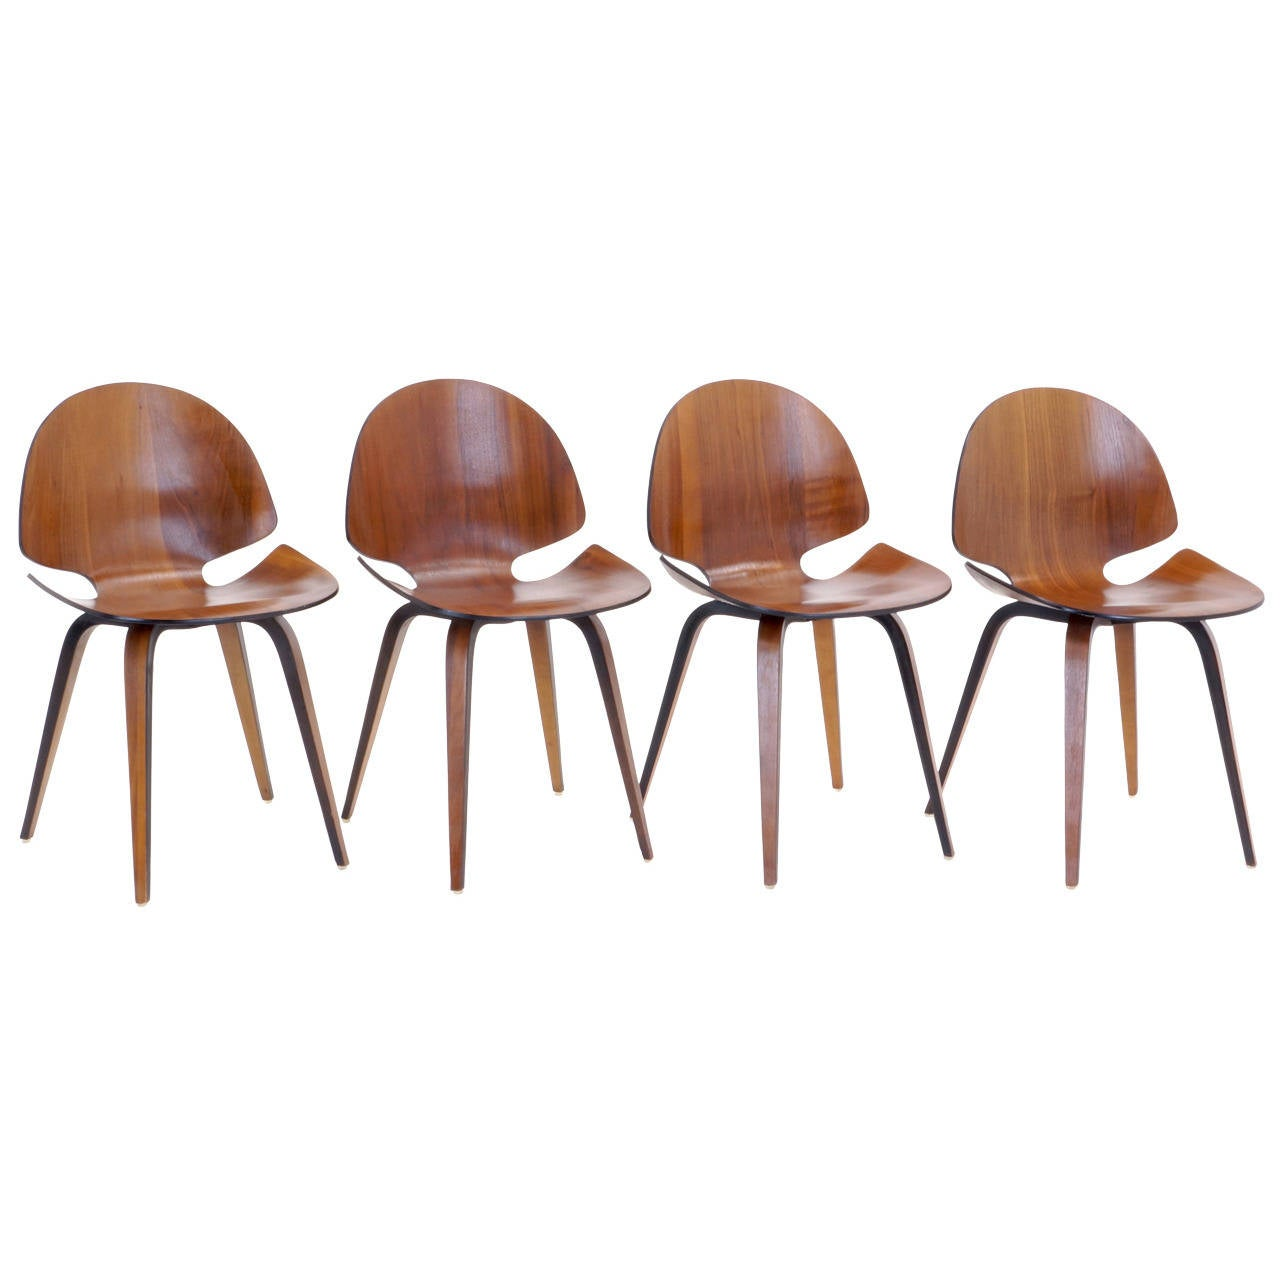 rare set of four george milhauser for plycraft bentwood dining chairs 1